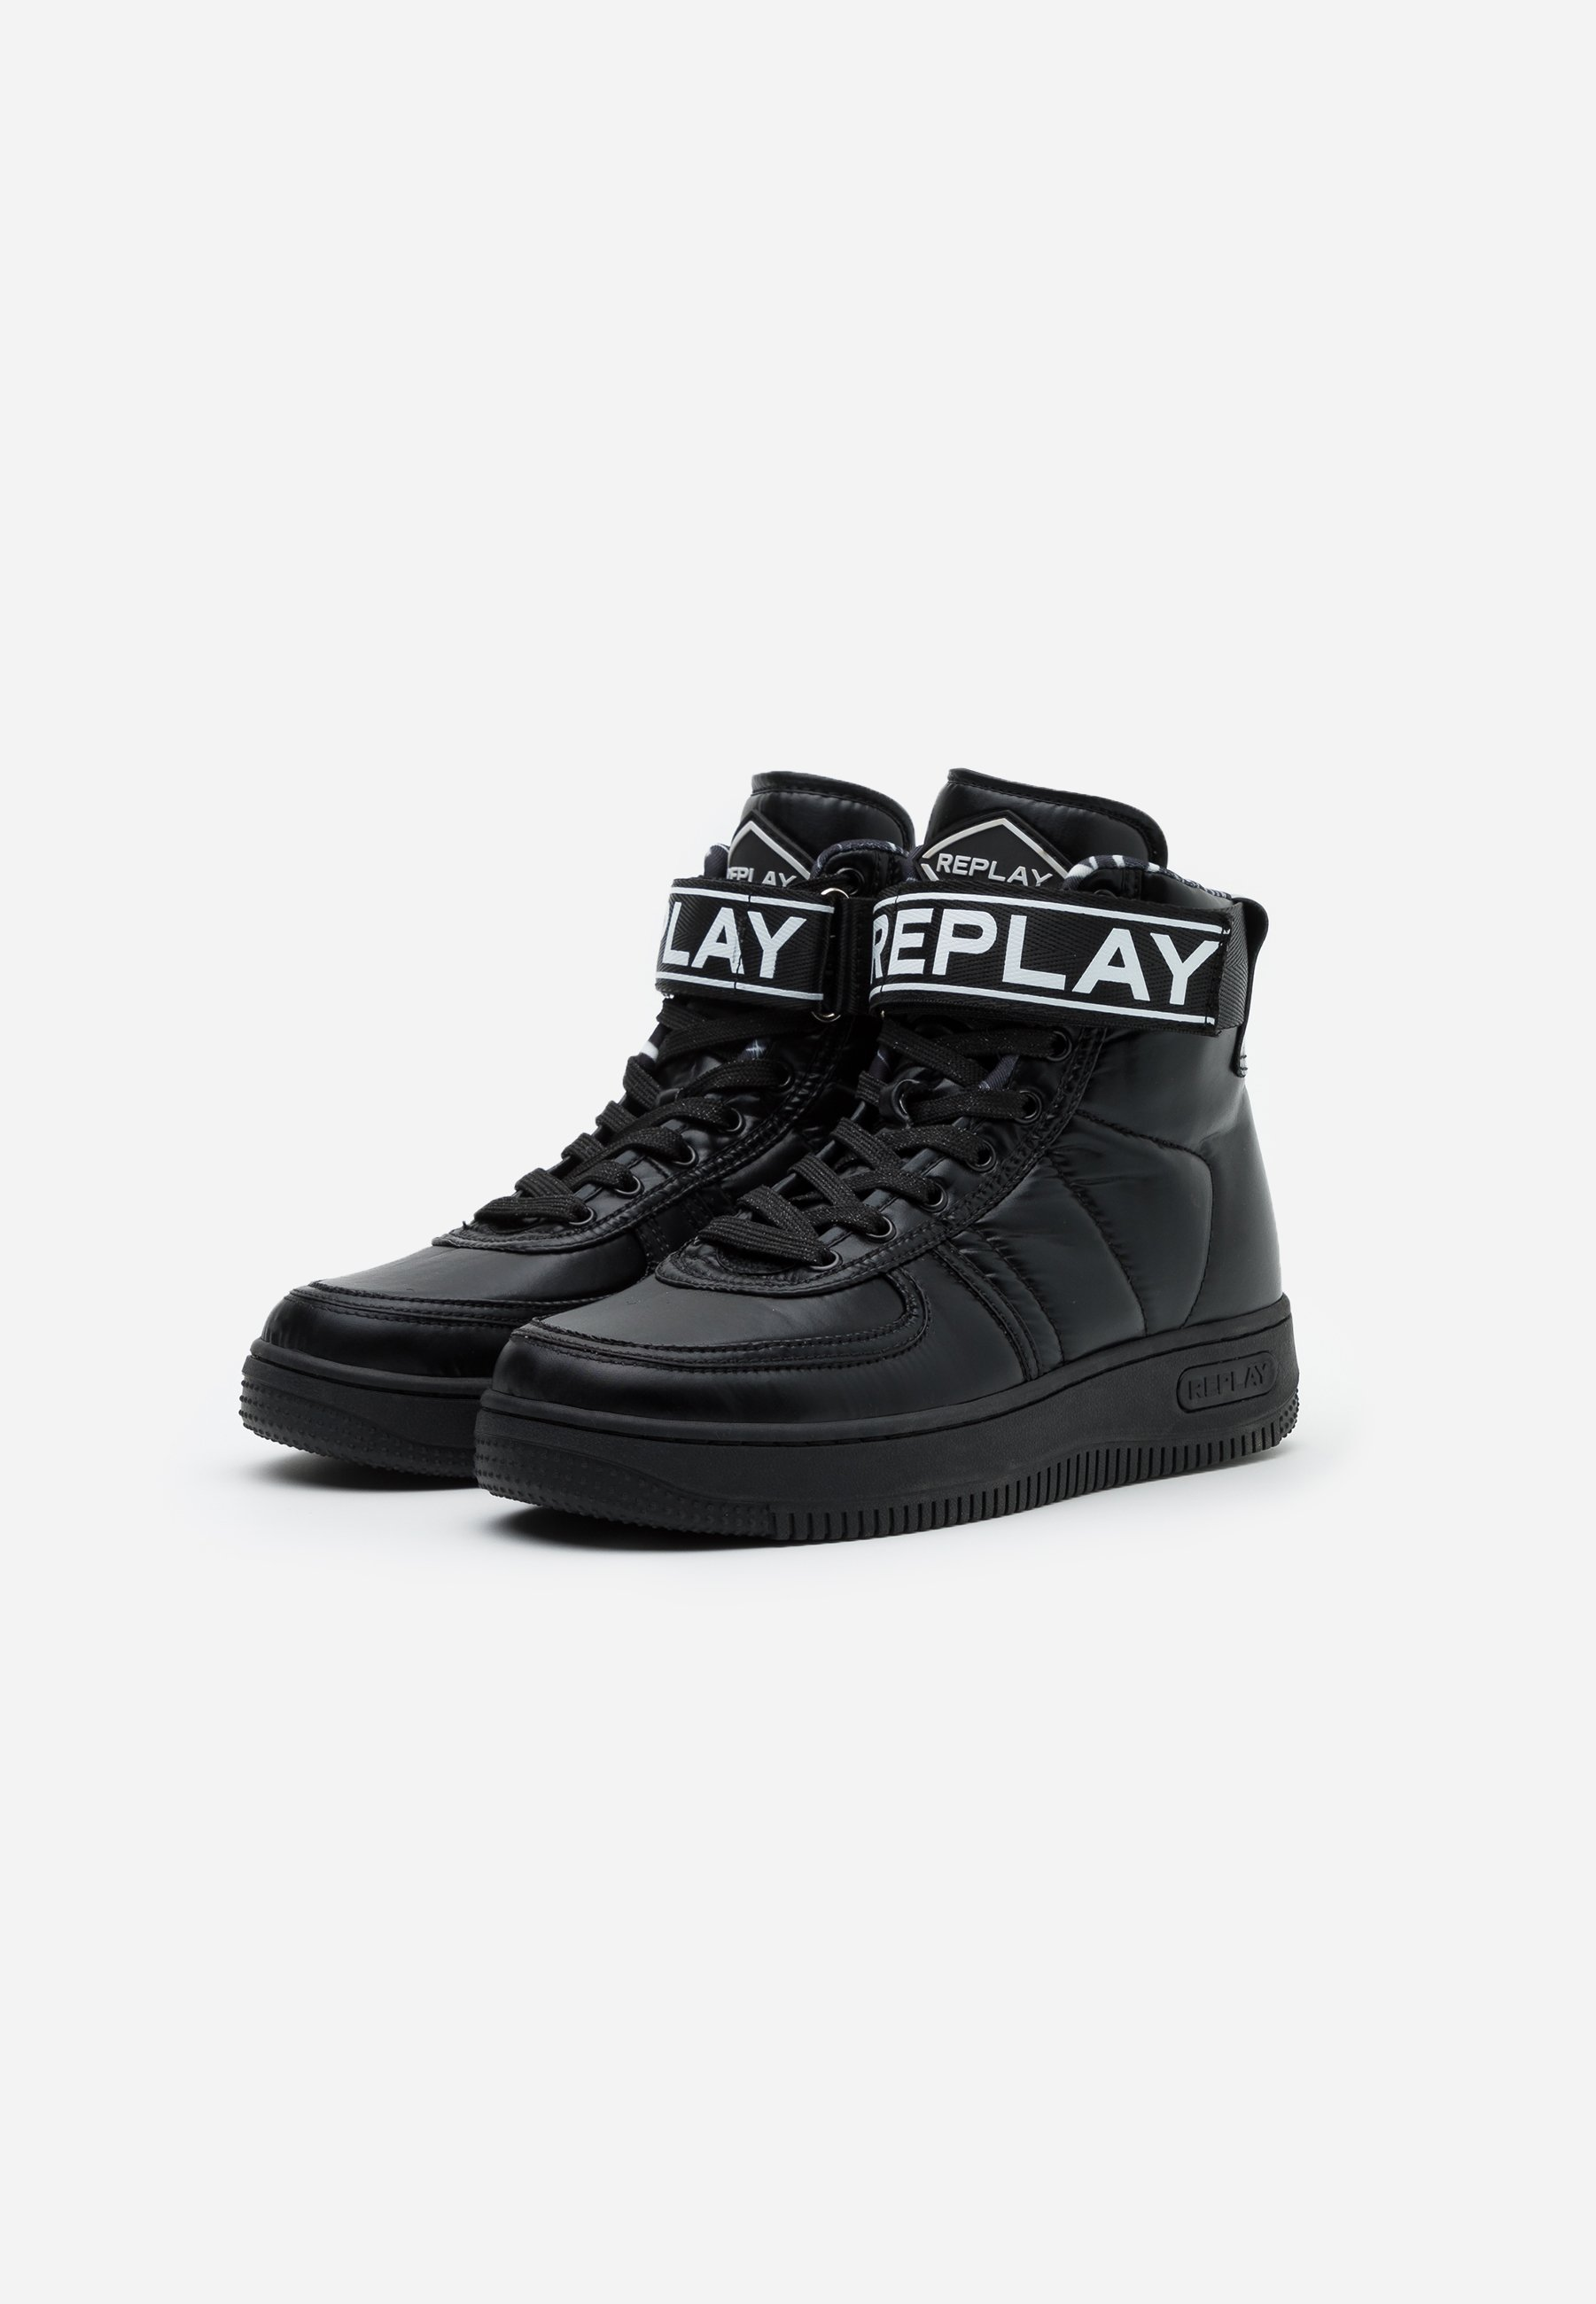 Replay Epic Endurance - Sneaker High Black/schwarz